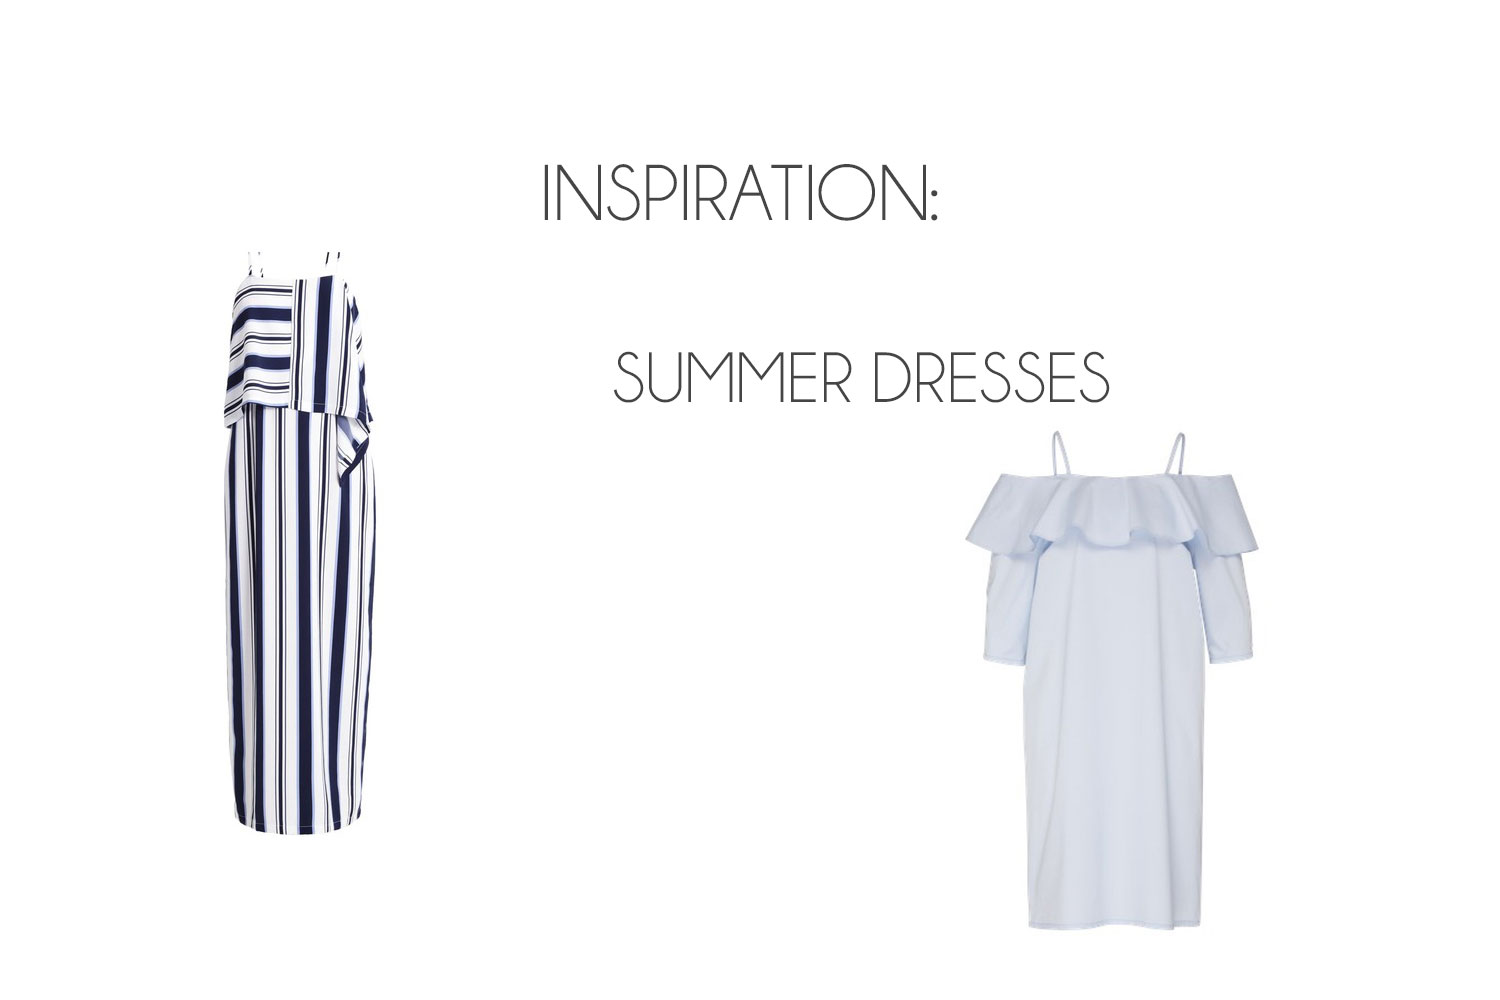 Inspiration: Beautiful Summer Dresses - Summerdresses